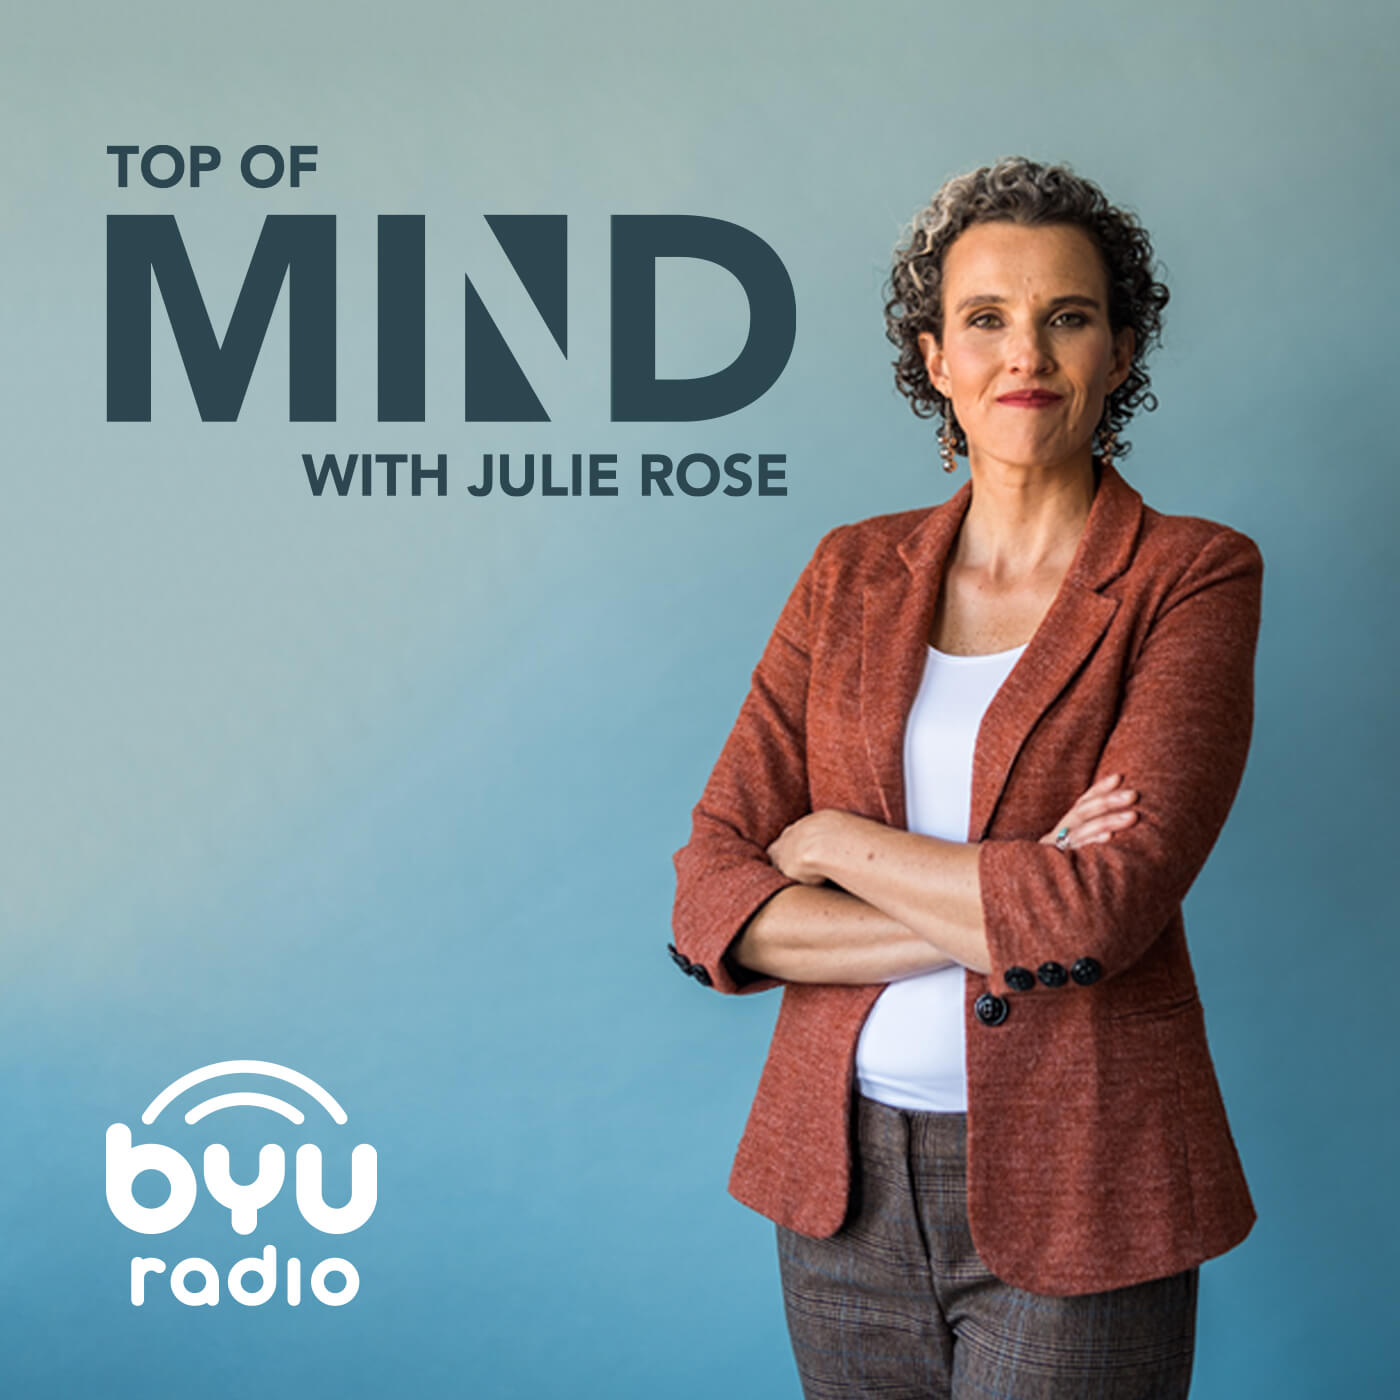 Top of Mind with Julie Rose